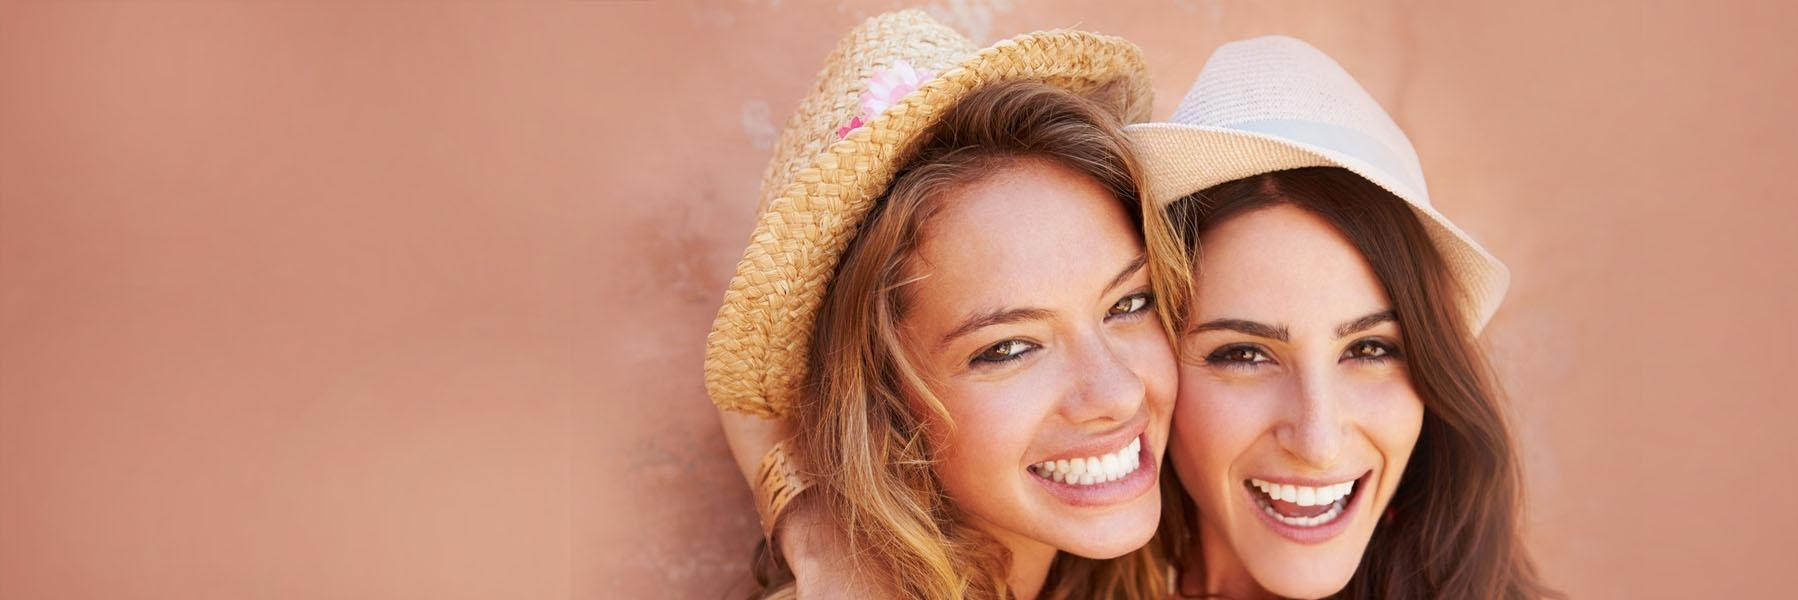 Dental Implants in Colorado Springs, CO